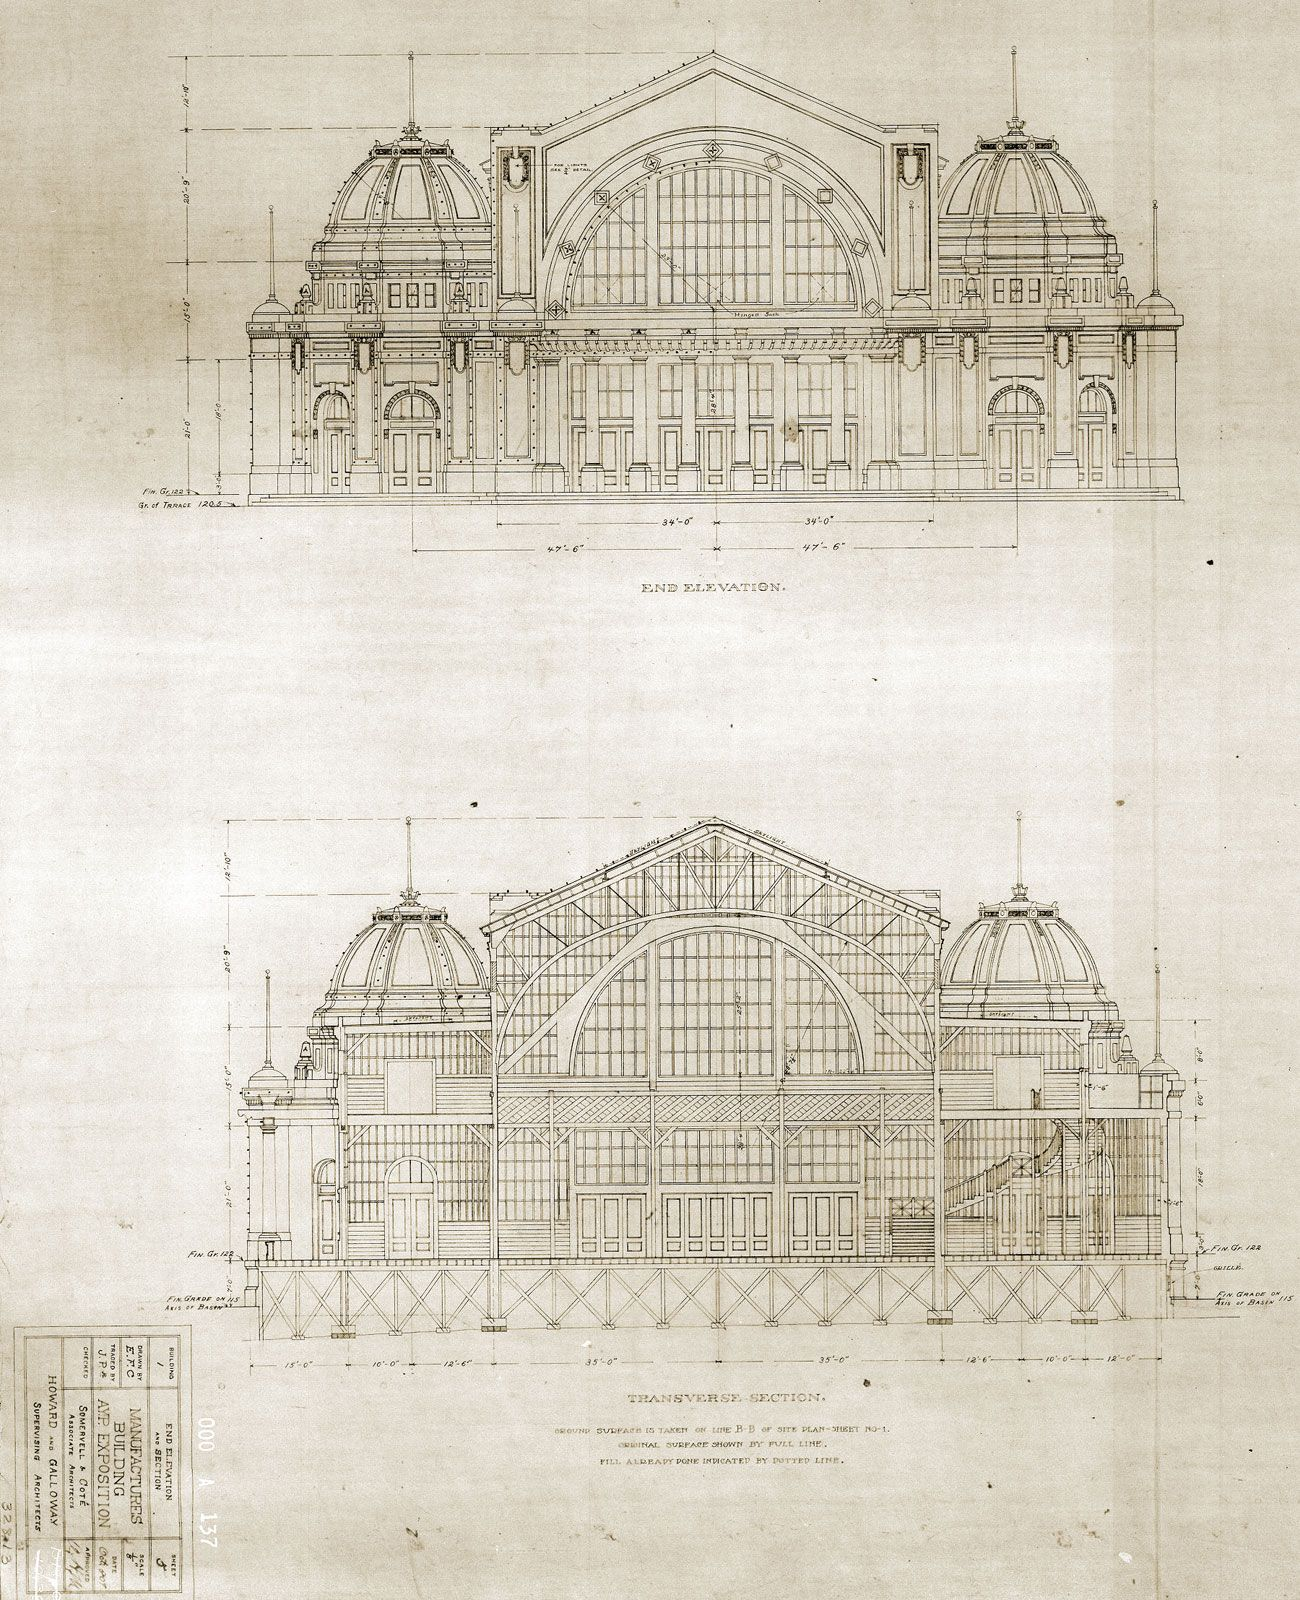 1300x1600 Old Architectural Drawings Gmuqr Architectural Drawings